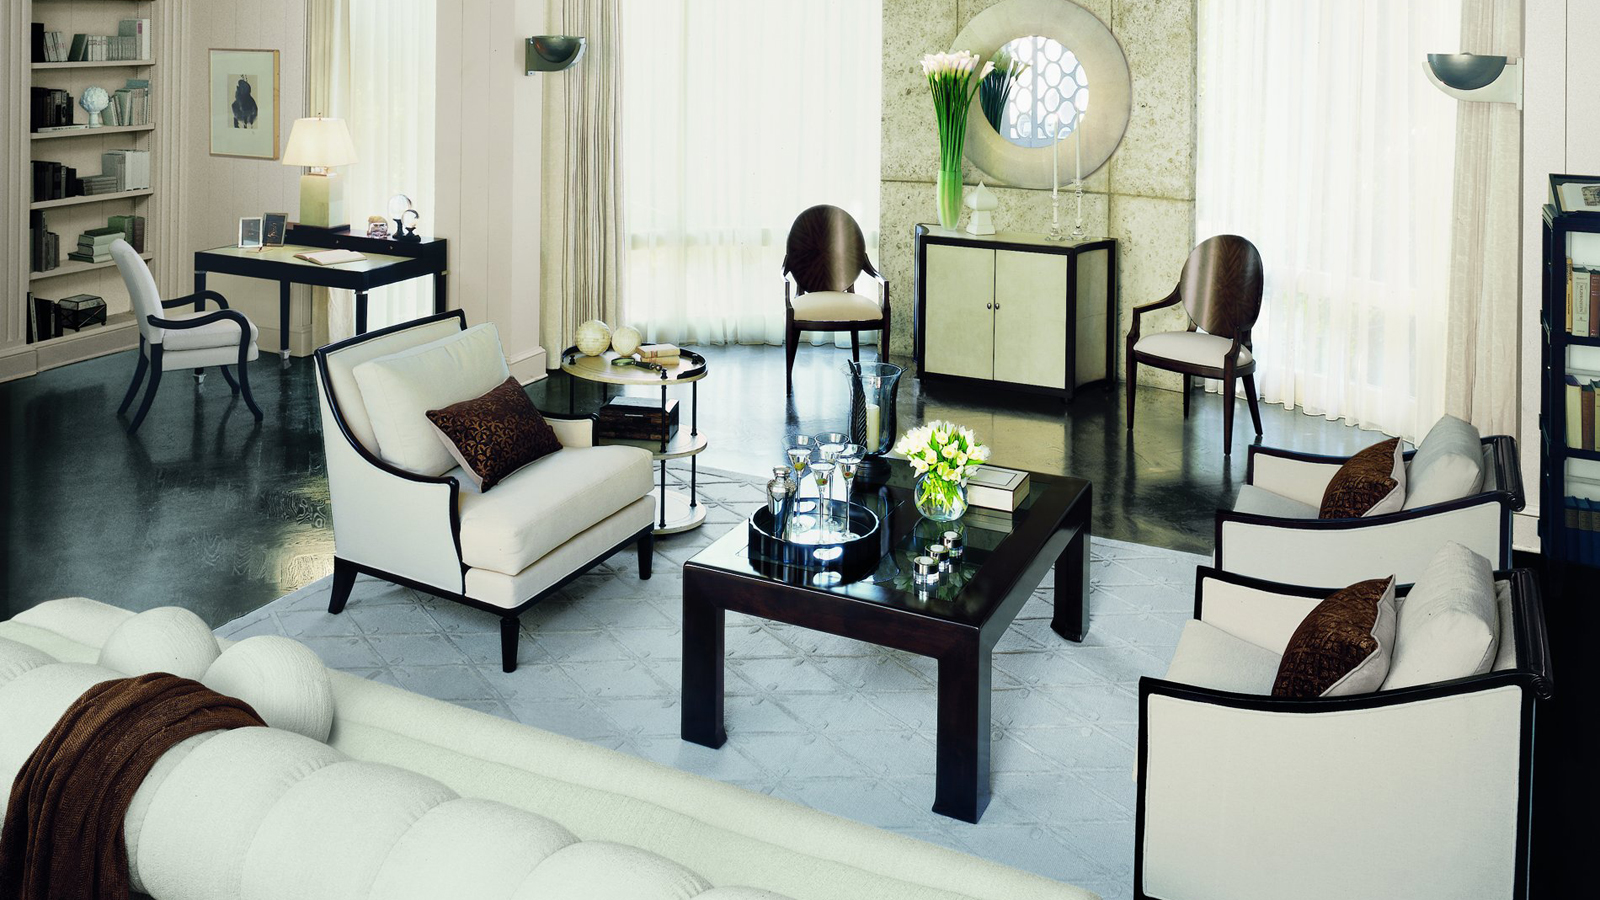 deco living room furniture gatsby style embrace the lifestyle of the great gatsby 6057